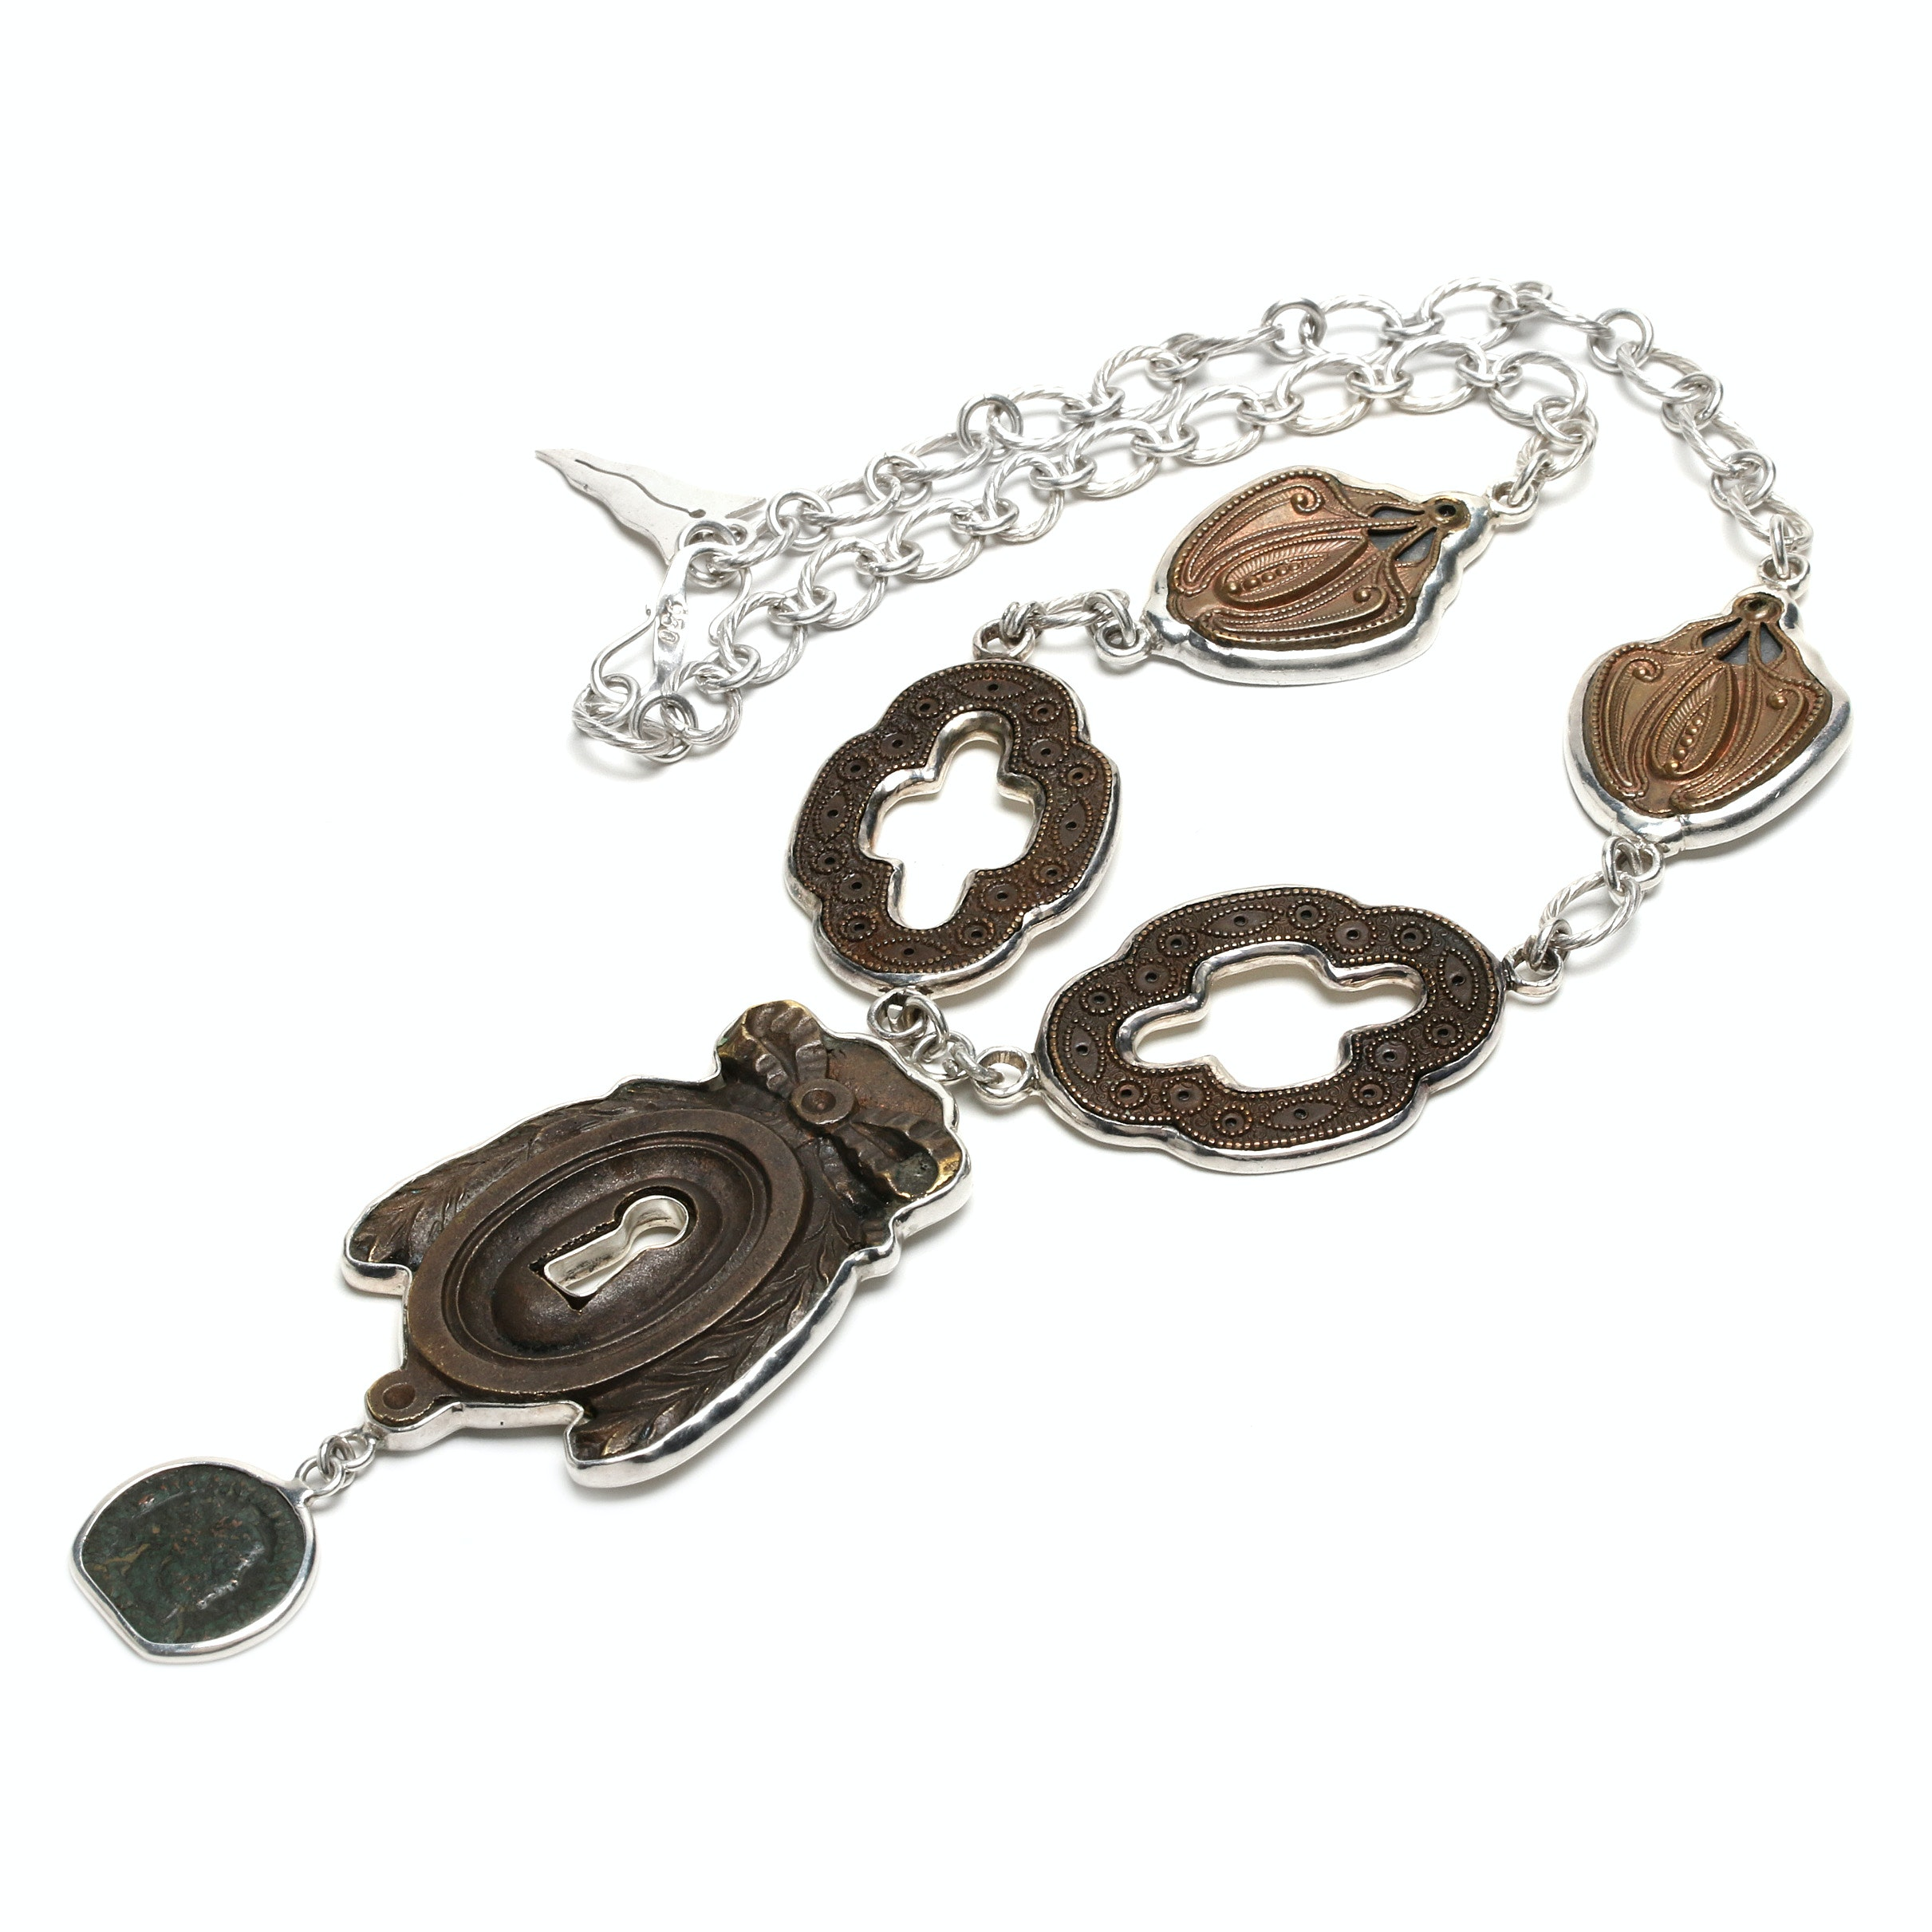 Barry Brinker 950 Silver Necklace With Roman Imperial Bronze Coin